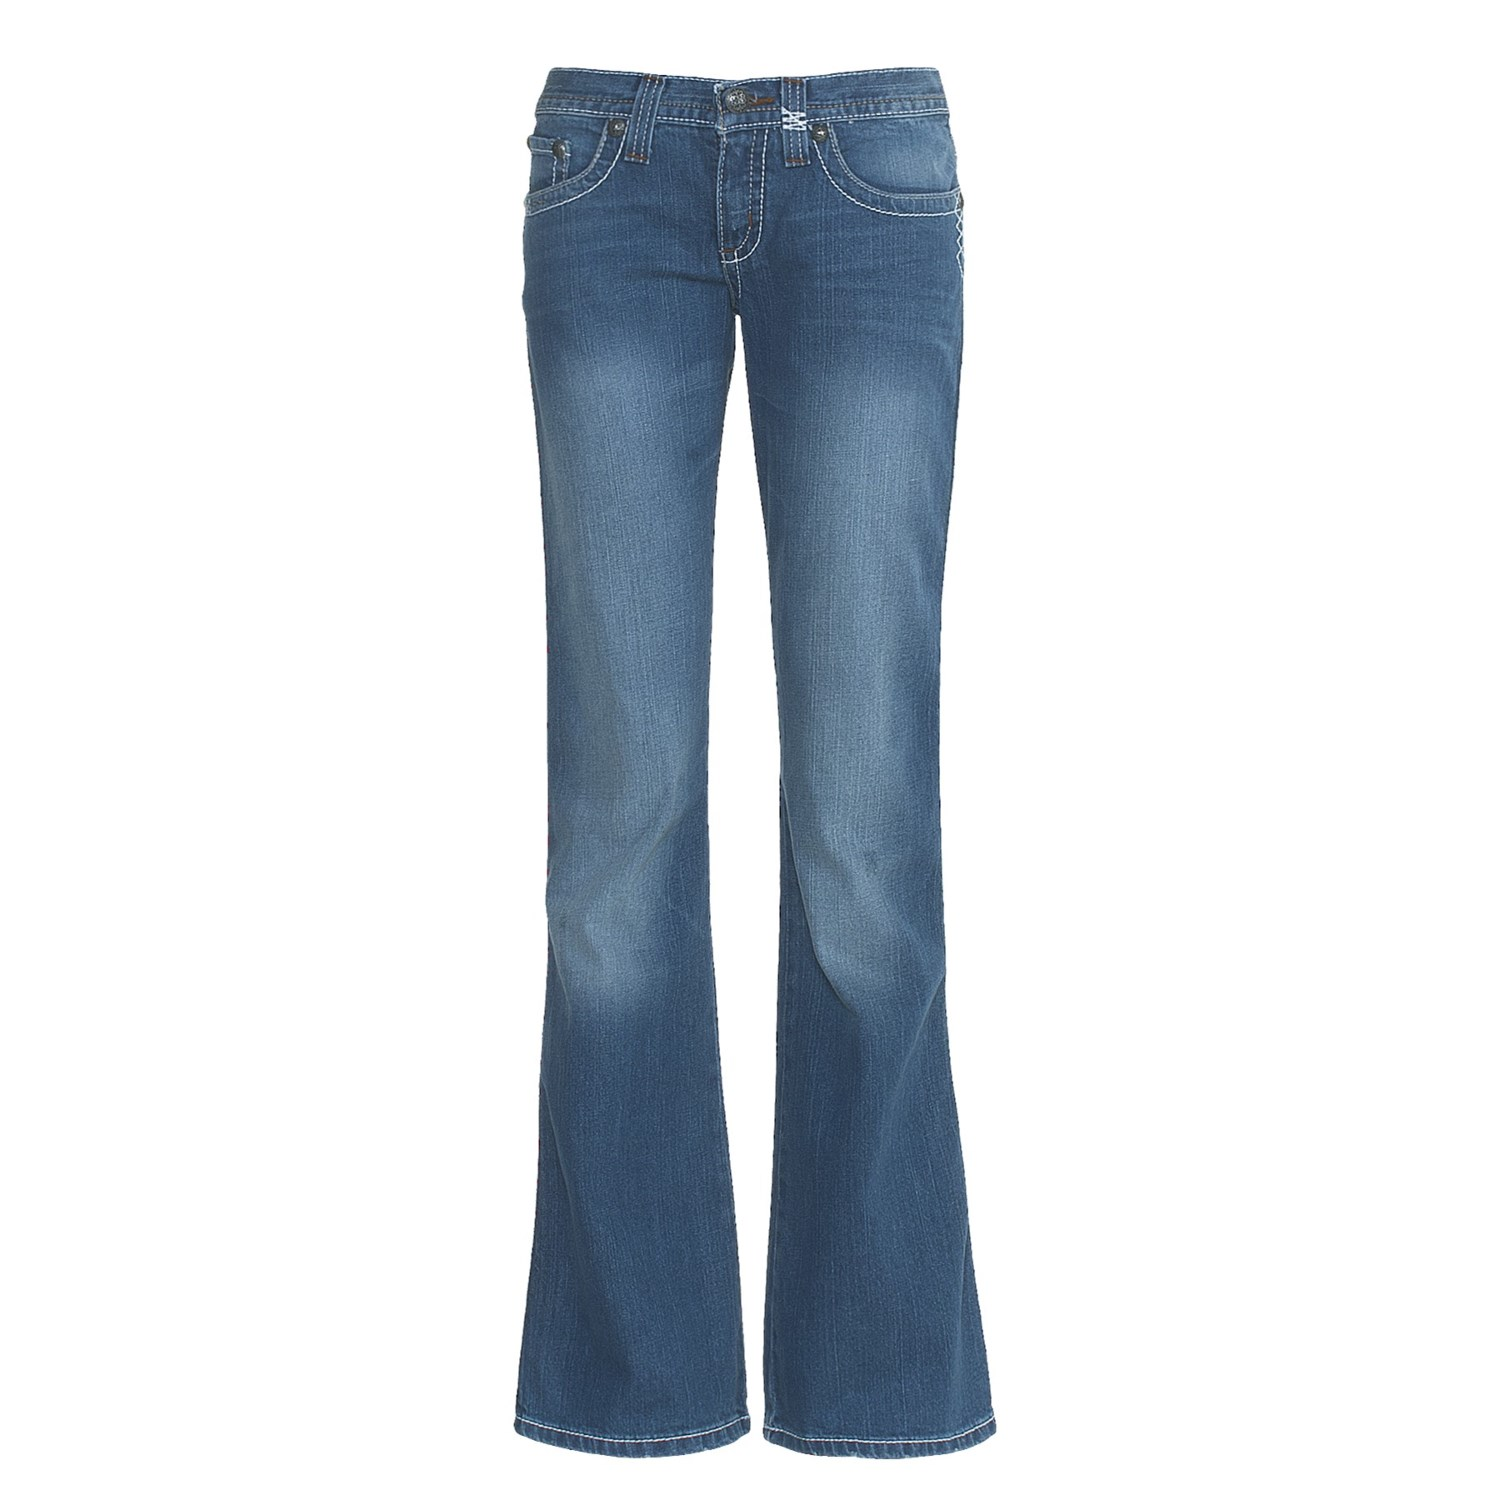 Jeans for Women with Curves